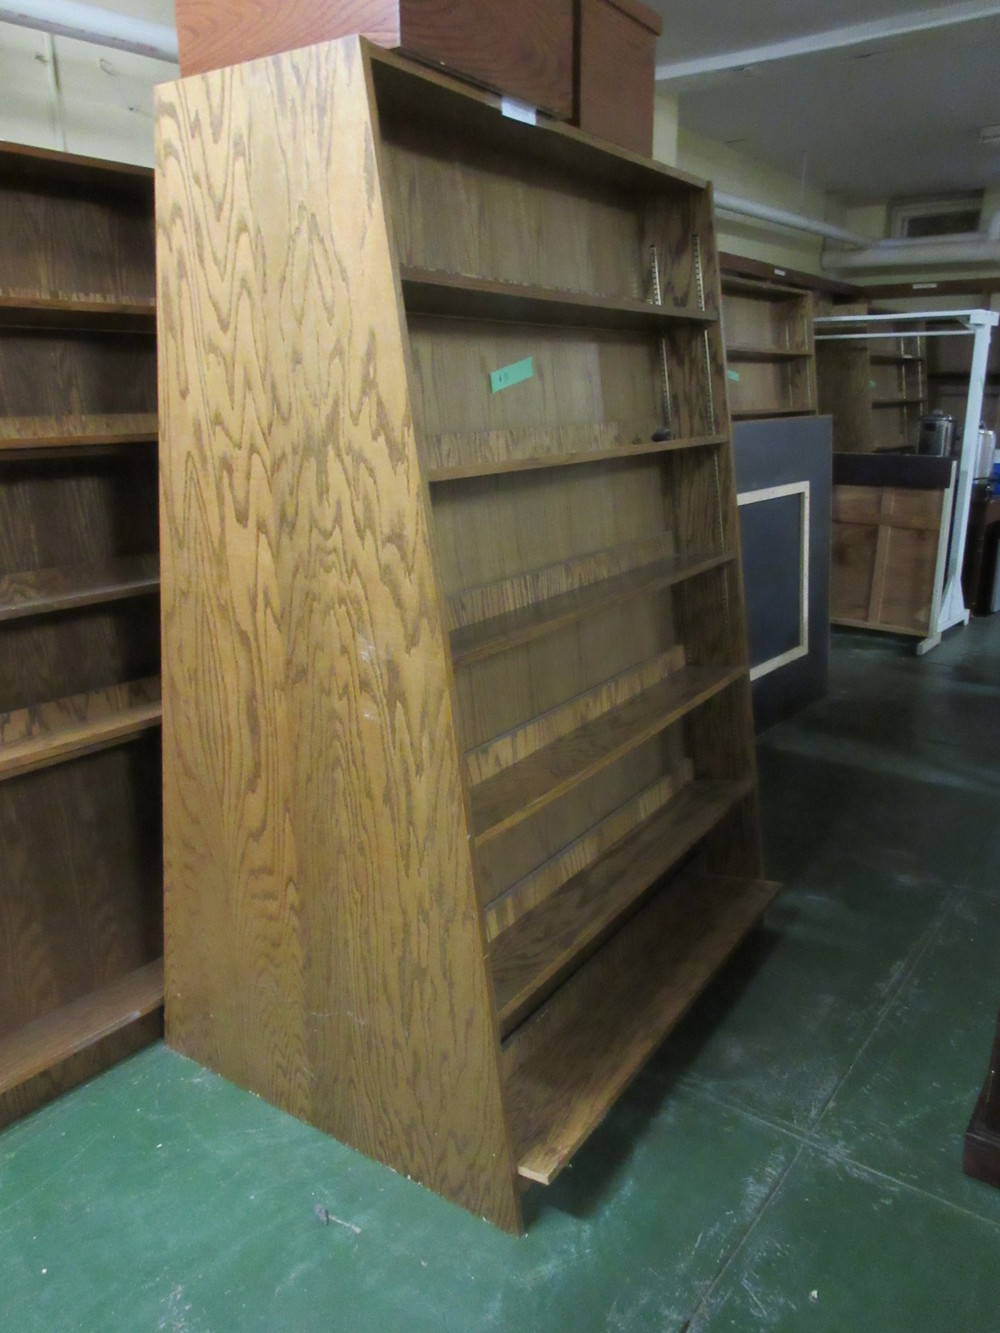 double sided bookcases.JPG